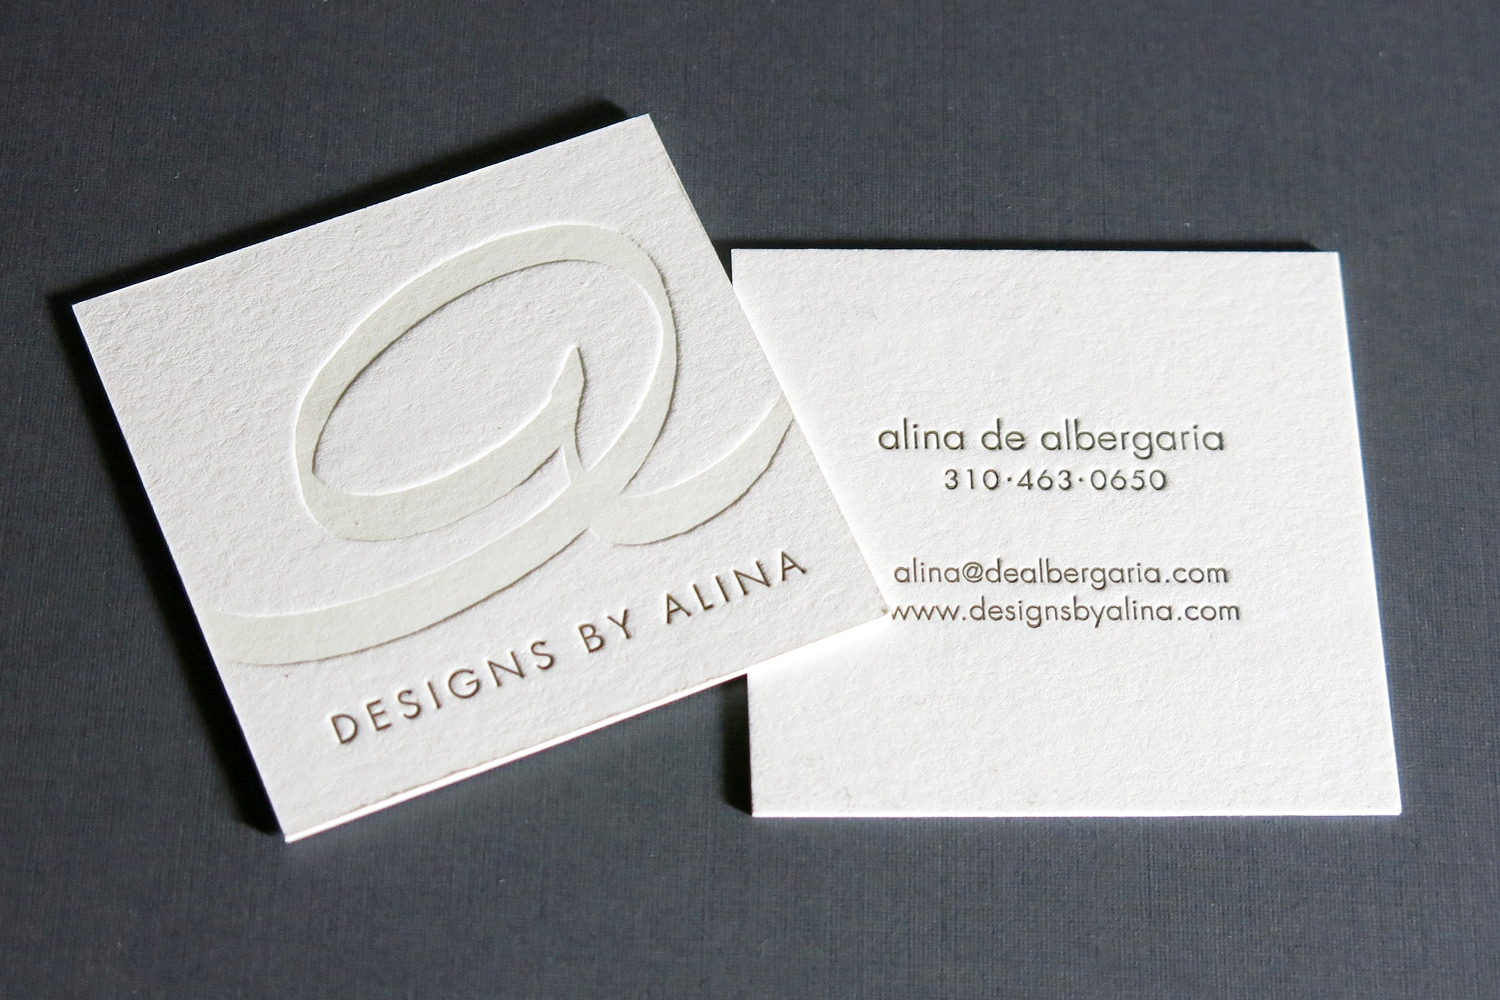 Stationery business cards lumino press stationery business cards colourmoves